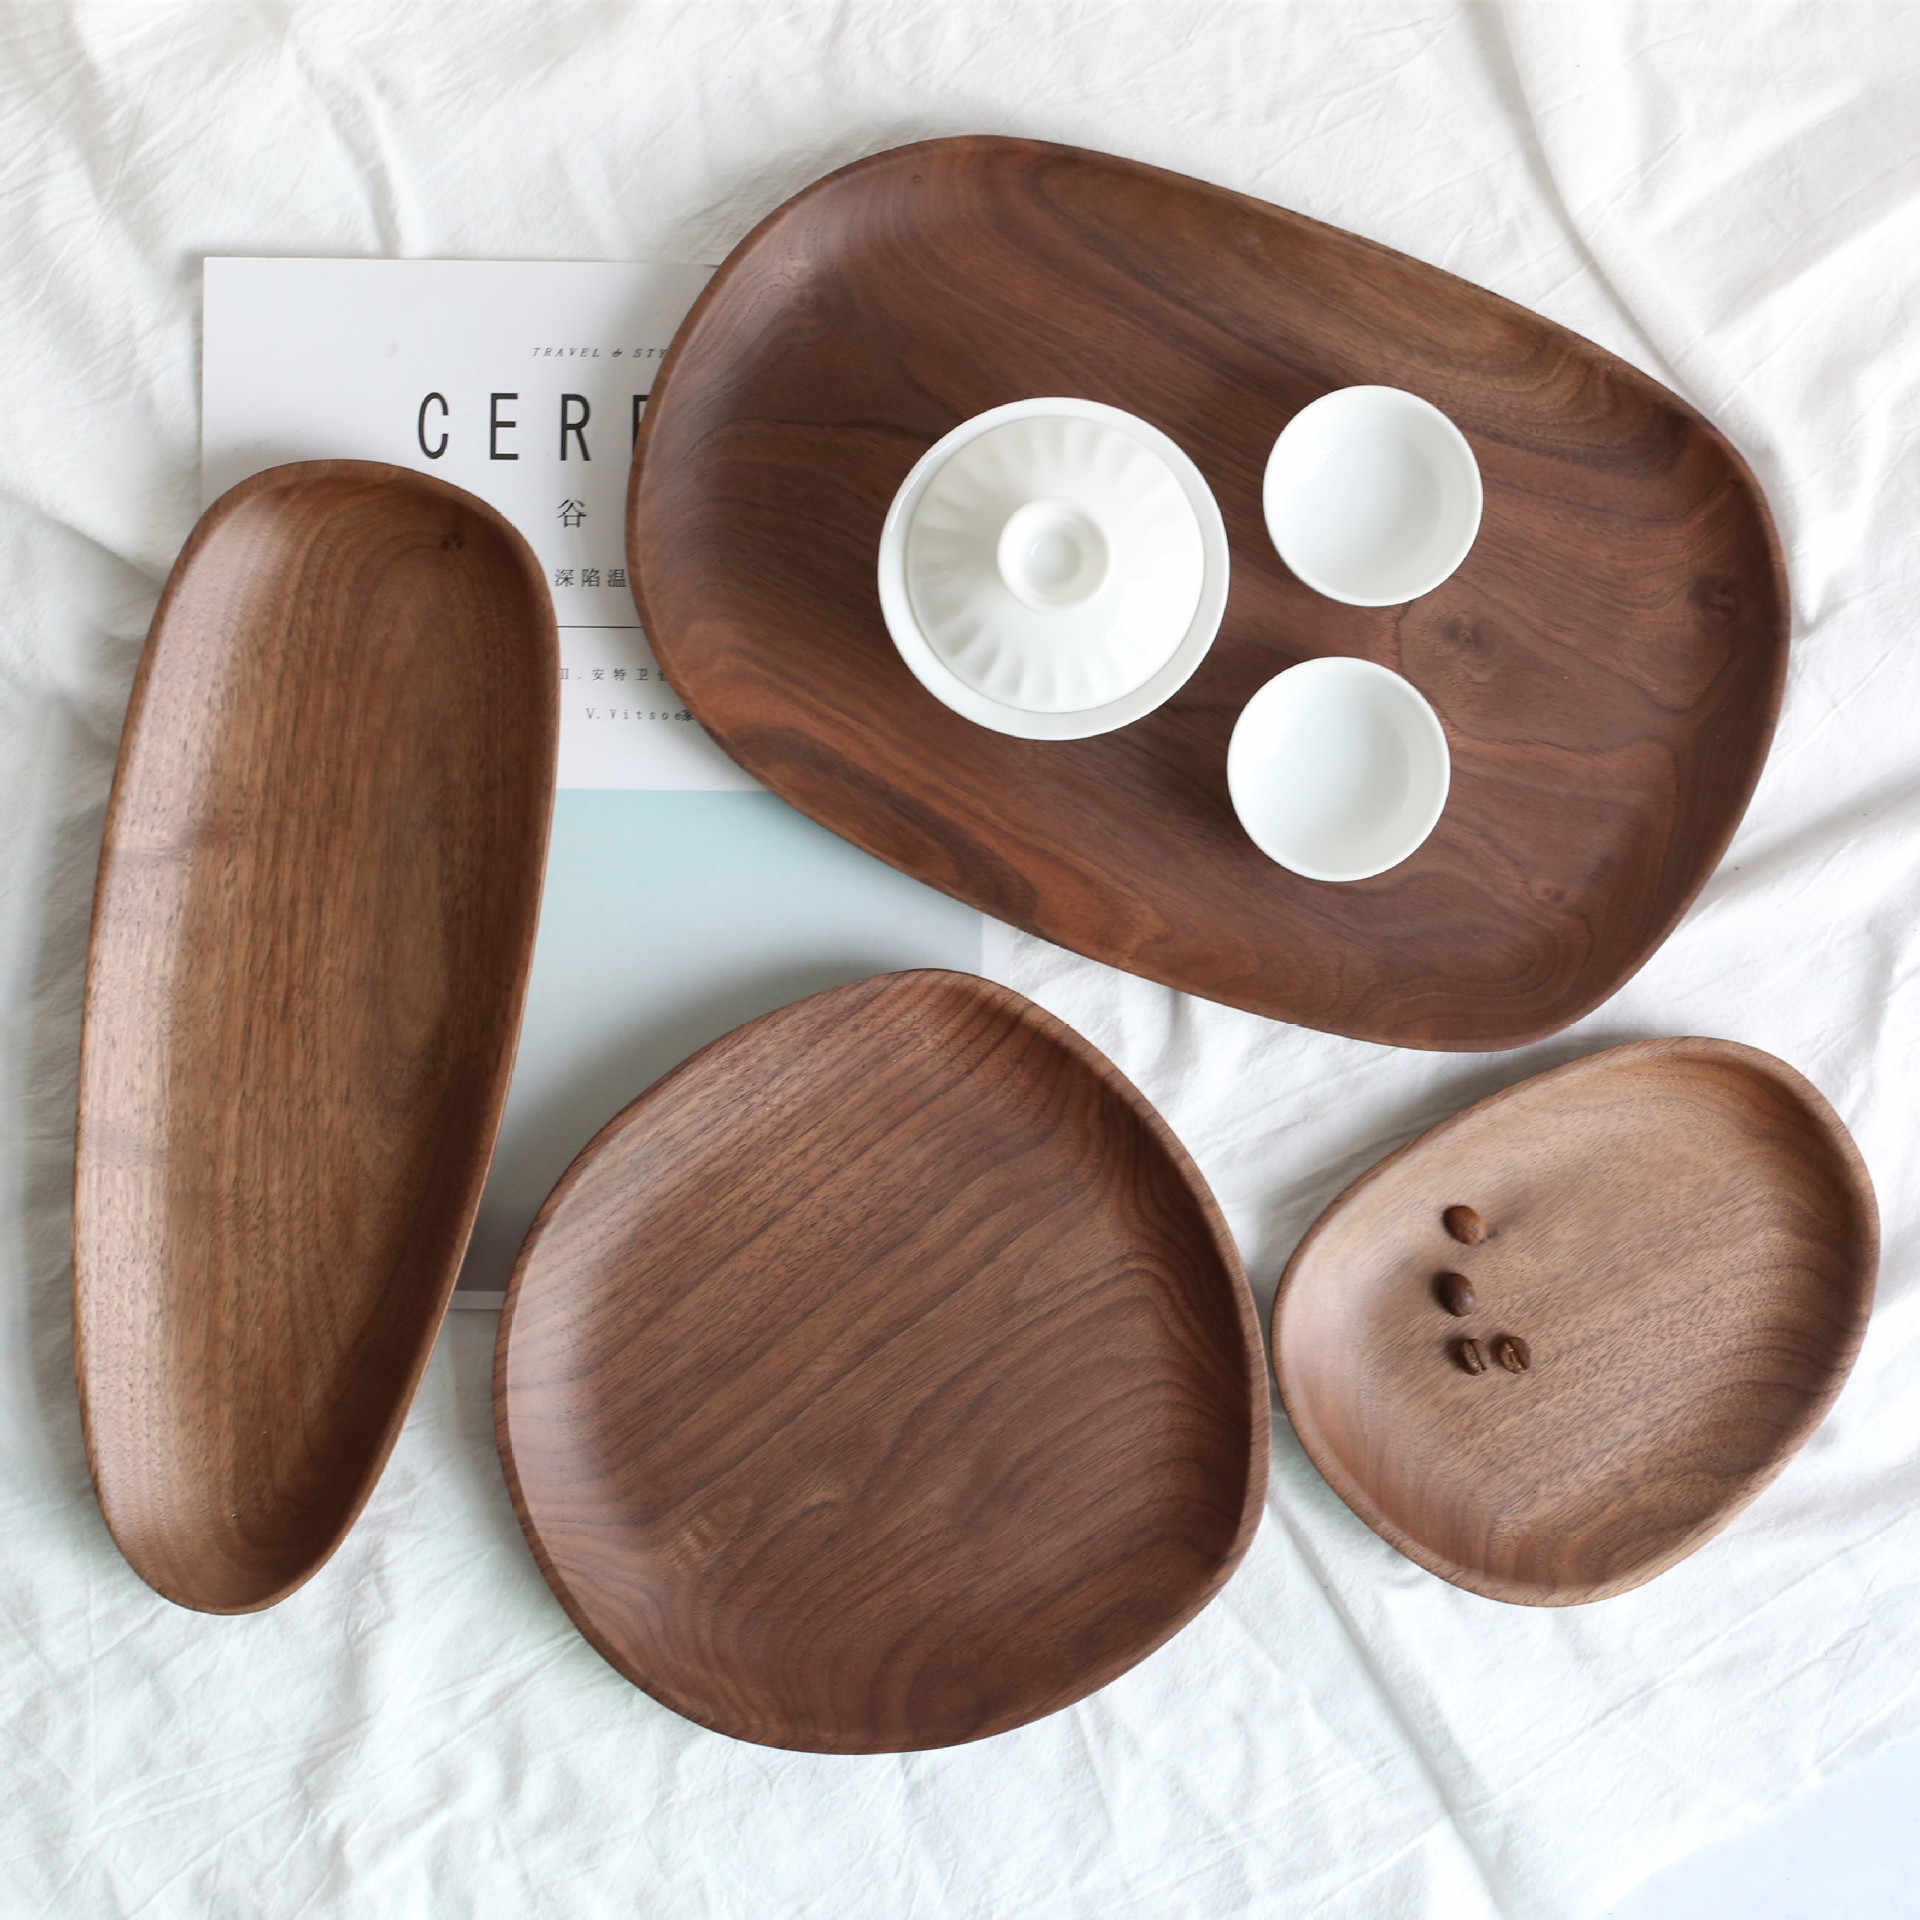 Irregular Oval Black Walnut Wood Pan Plate Fruit Dishes Saucer Tea Tray Dessert Dinner Plate Storage Trays Tableware Set